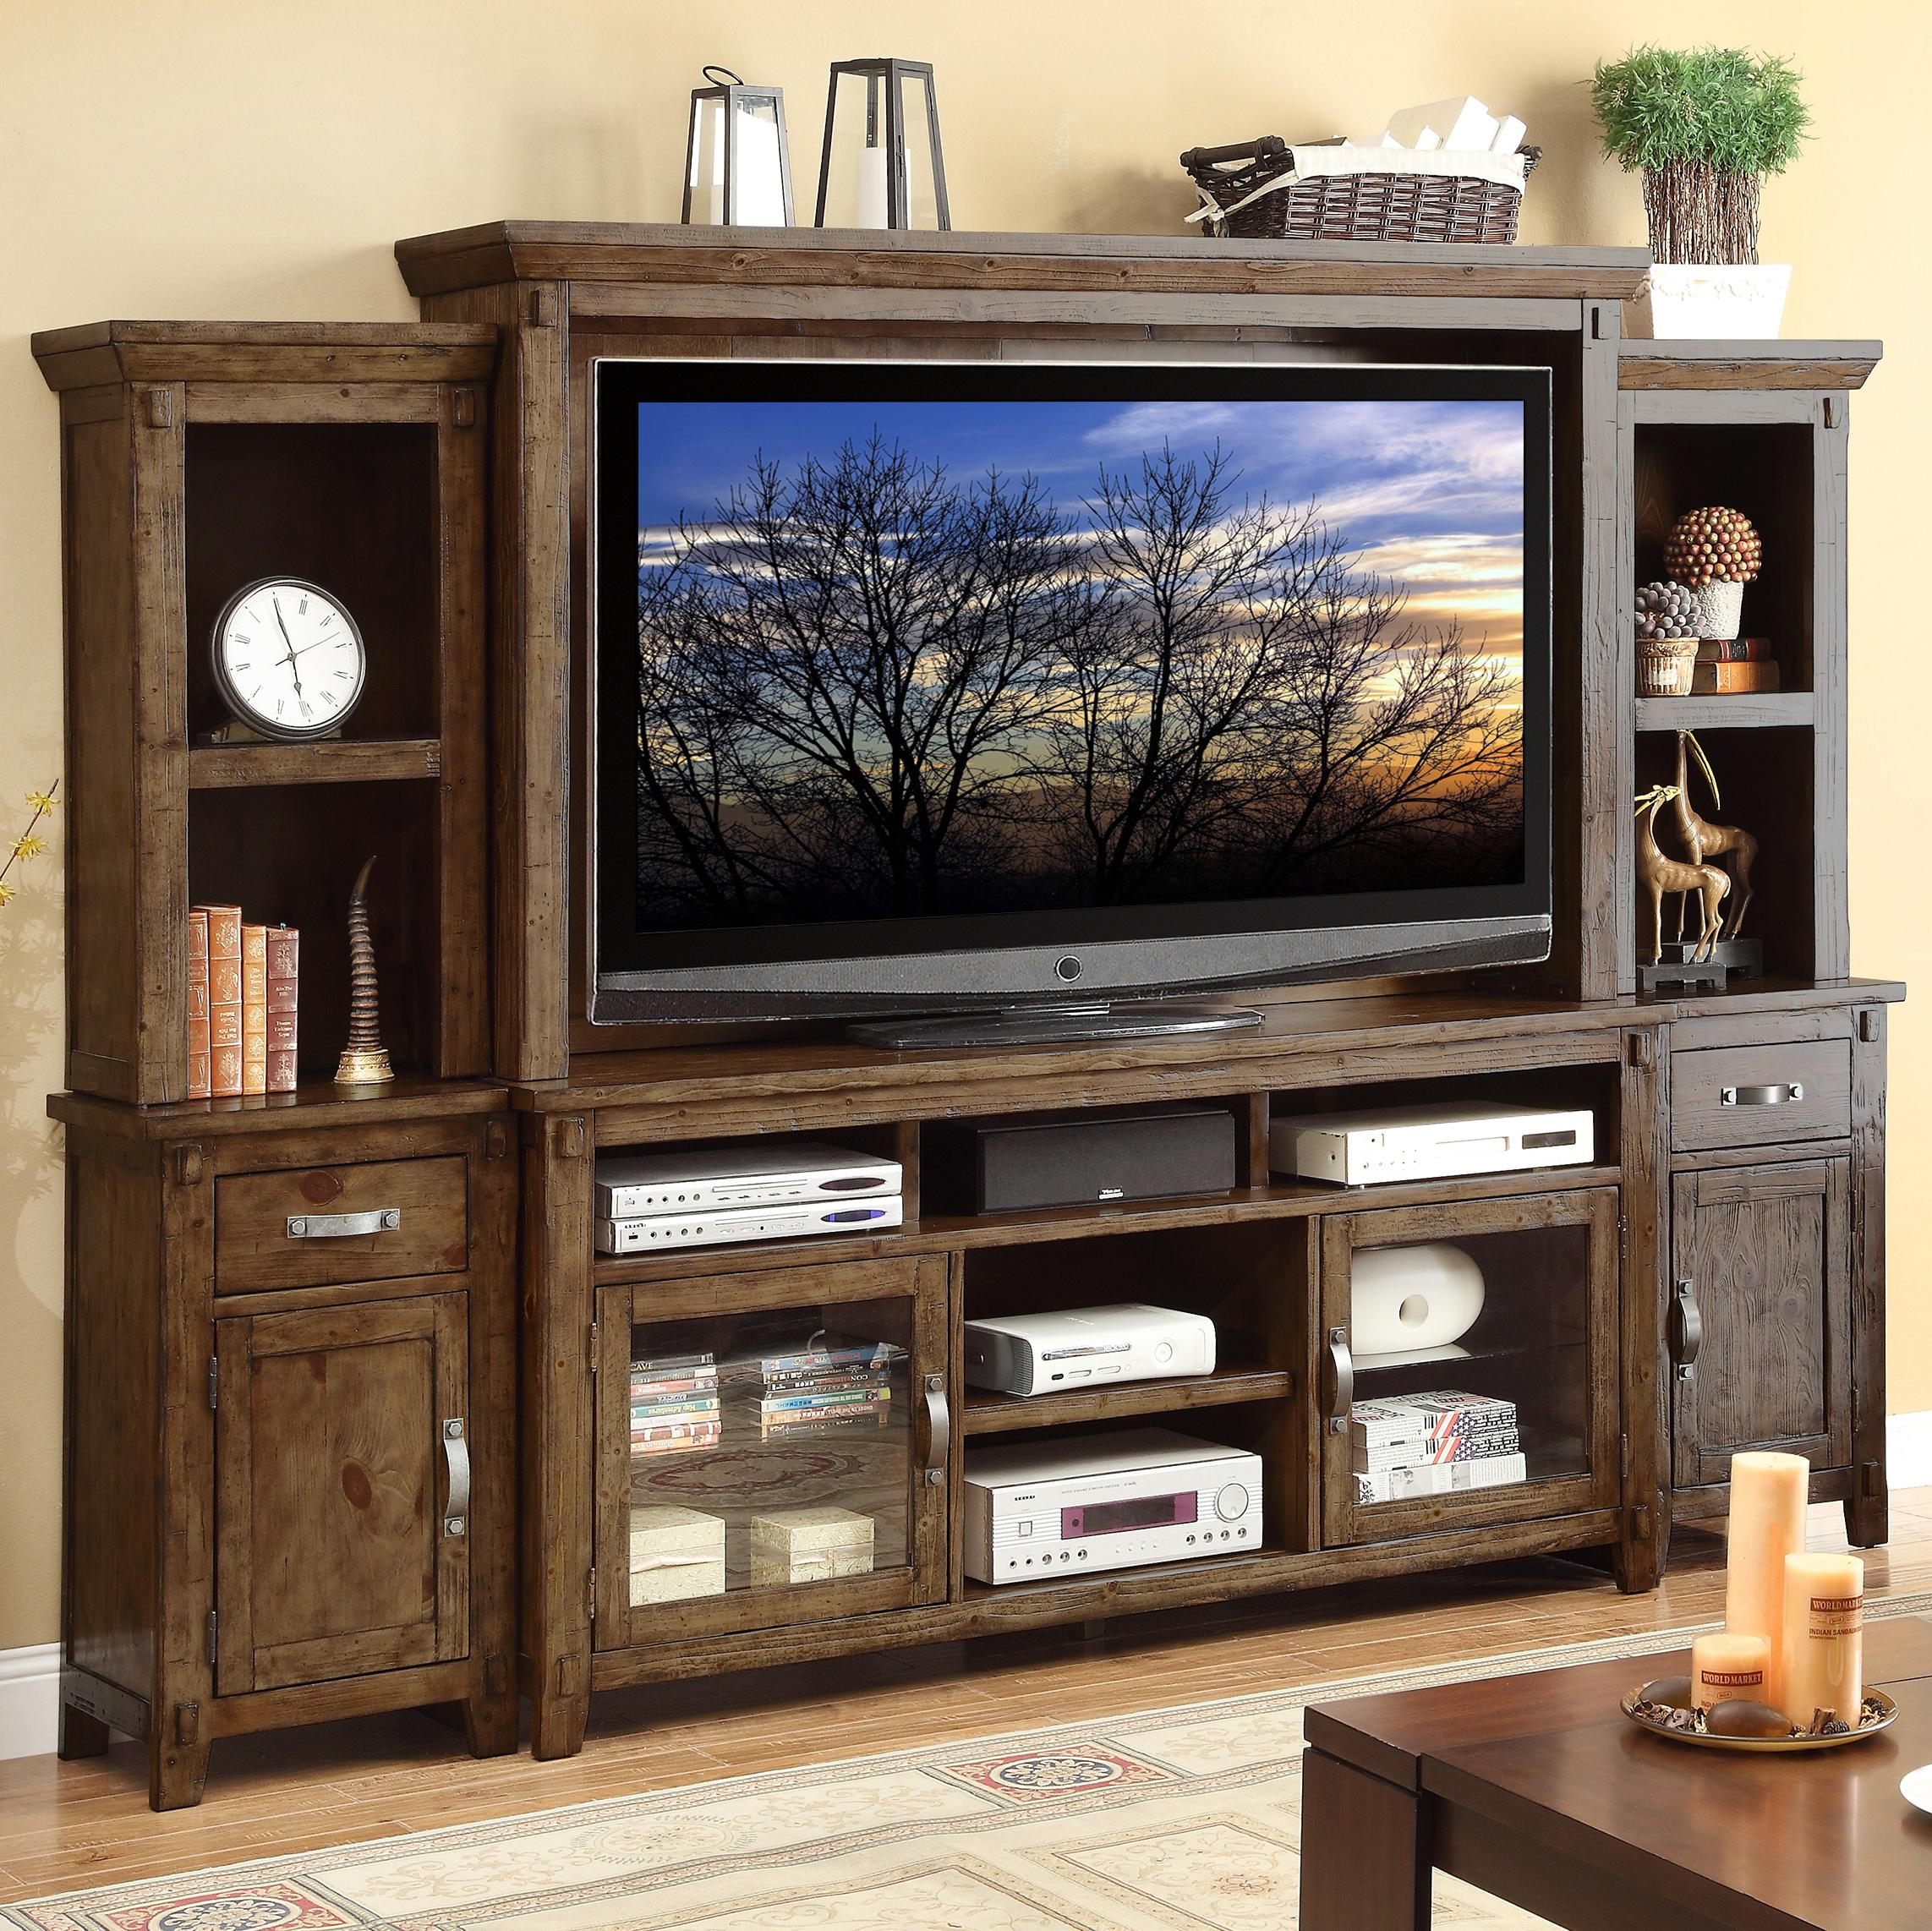 Pine Entertainment Unit Vendor 1356 Restoration Zrst 1000 Large Rustic Casual Wall